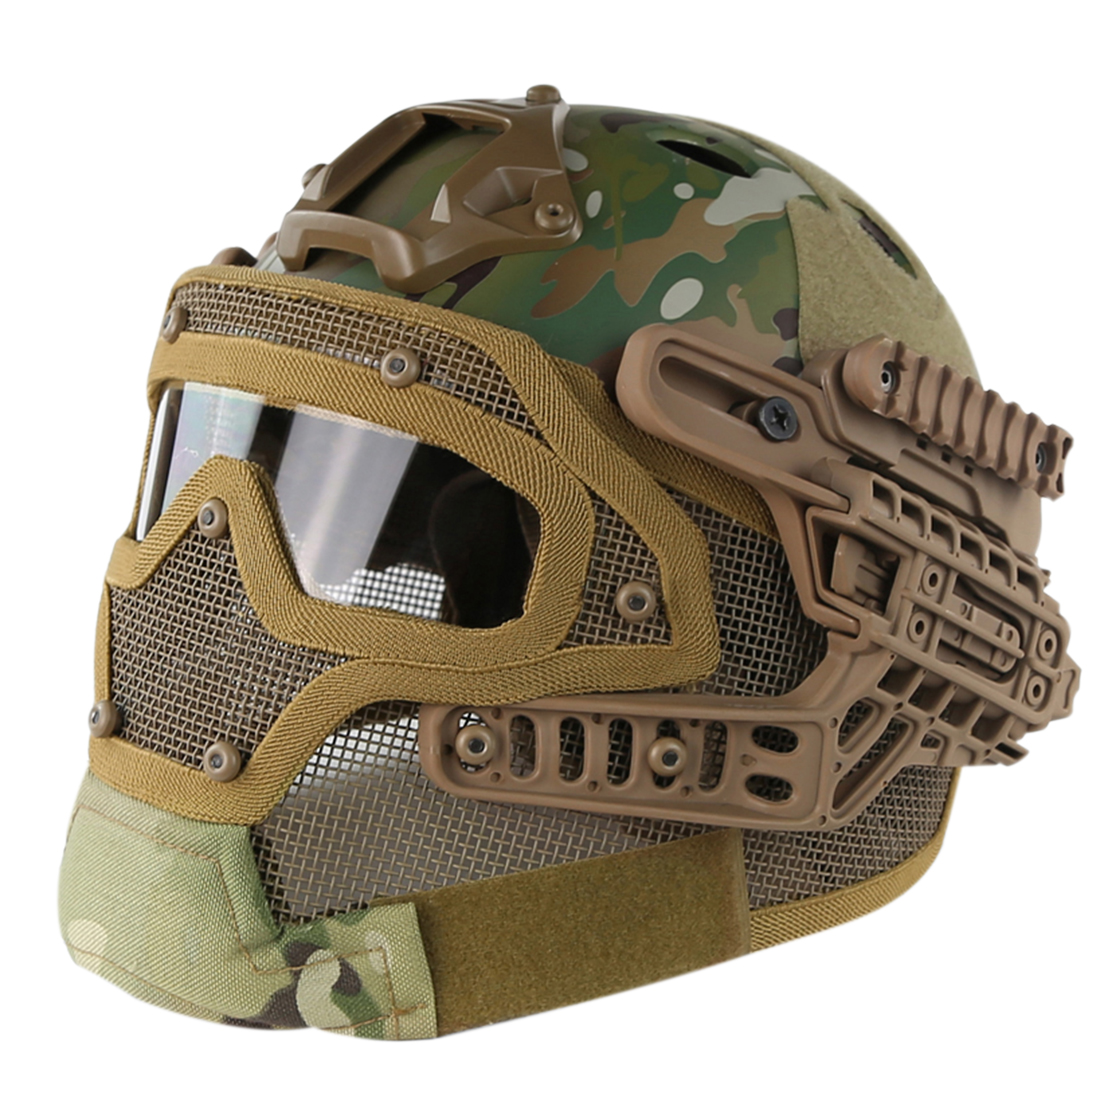 NFSTRIKE Steel Wire Protective FAST Helmet Suit for Outdoor Activity Airsoft Tactics Military Helmet High Quality Drop Shipping nfstrike steel wire protective fast helmet suit for airsoft military tactics helmet for nerf accessories games outdoor activity